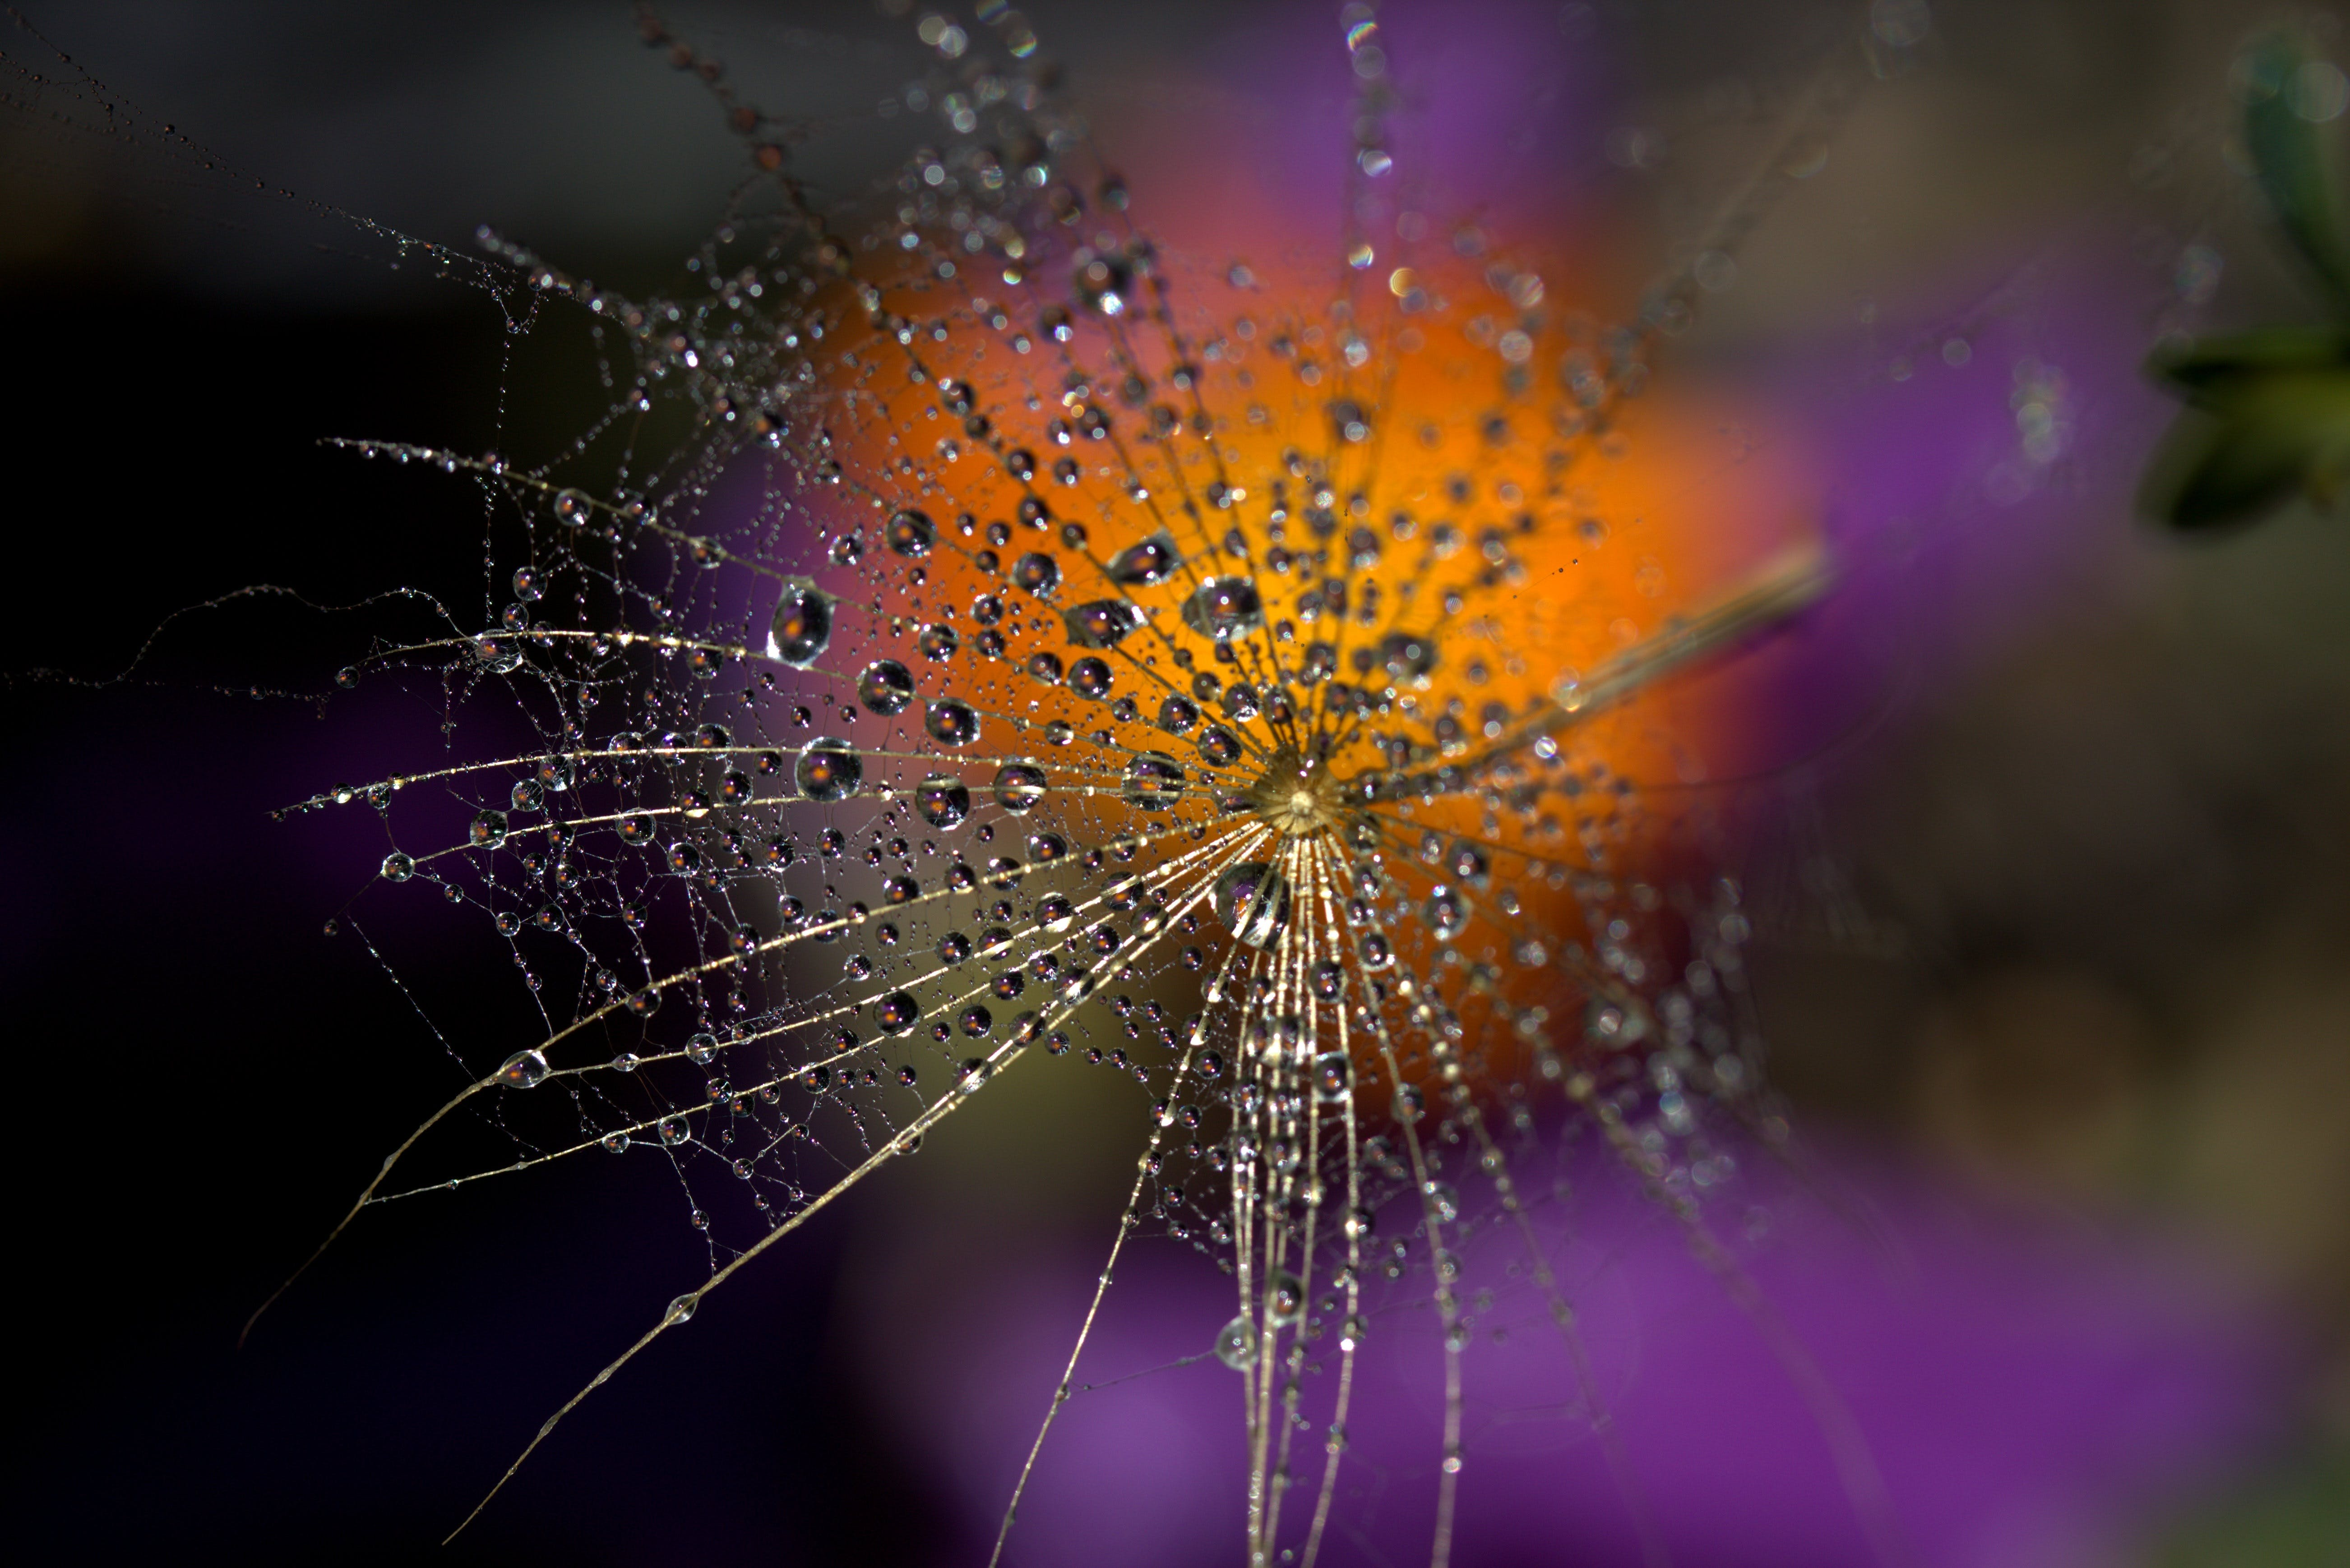 Selective Focus Photography of Dew Drops on Plant